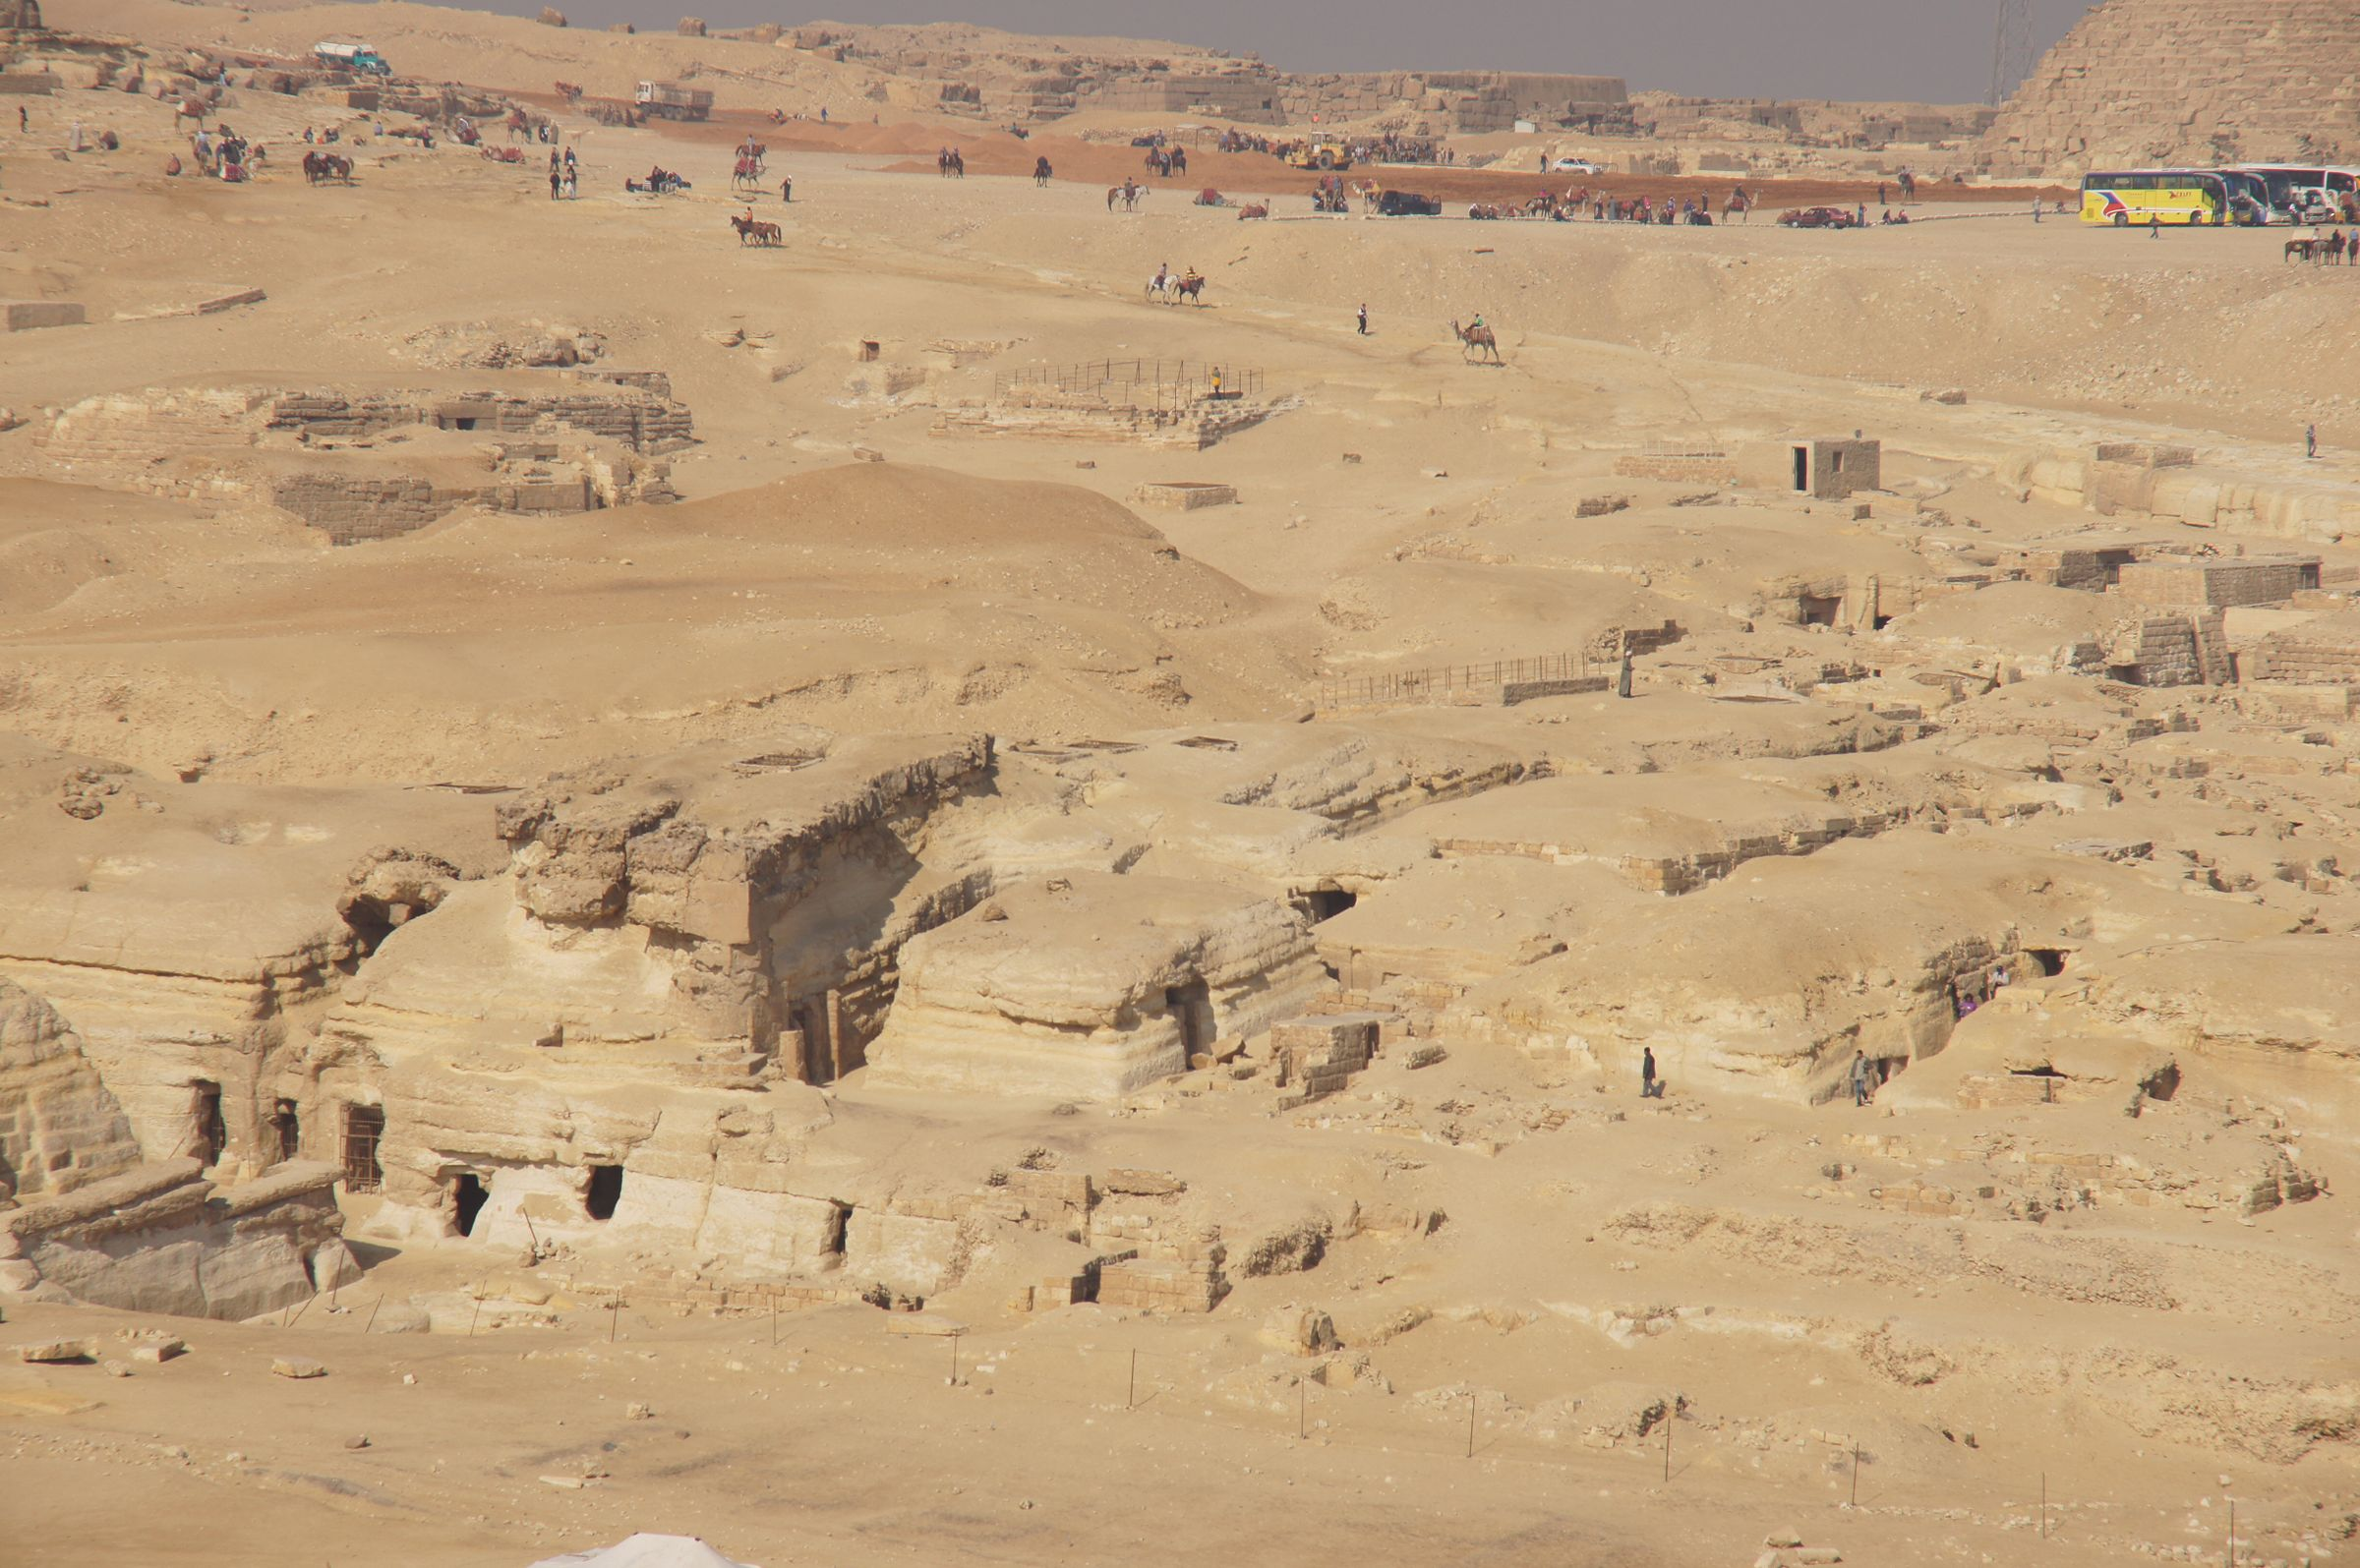 Central Field (Hassan): Site: Giza; View: G 8400, G 8418, G 8602, G 8606, G 8620, G 8640, G 8650, G 8680, G 8682, G 8684, G 8690, G 8696, G 8408, G 8420, G 8658, G 8656, G 8660, G 8654, G 8655, G 8702, G 8708, G 8704, G 8710, G 8422, G 8664, G 8668, G 8424, G 8670, G 8672, G 871